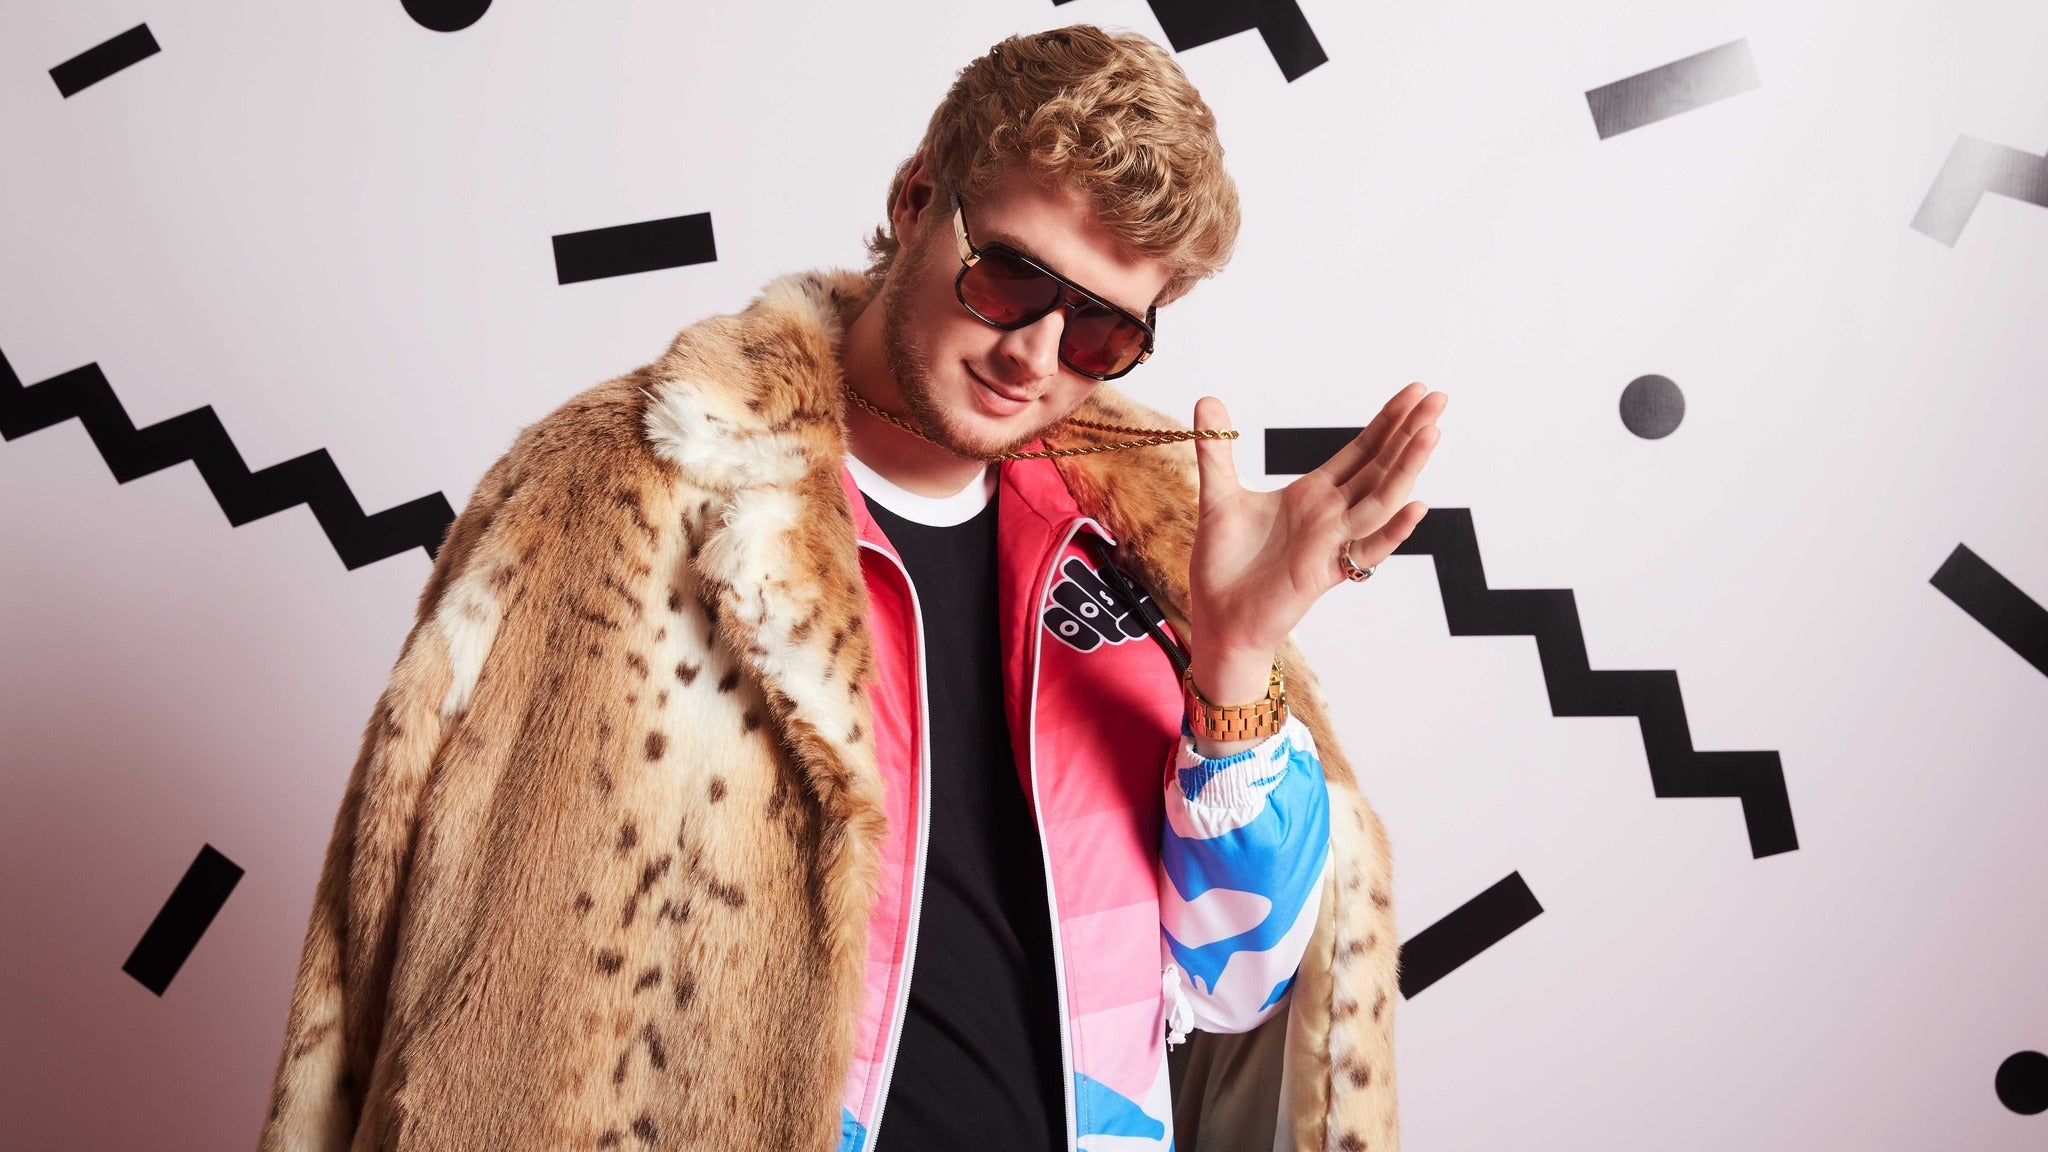 Image used with permission from Ticketmaster | Yung Gravy tickets